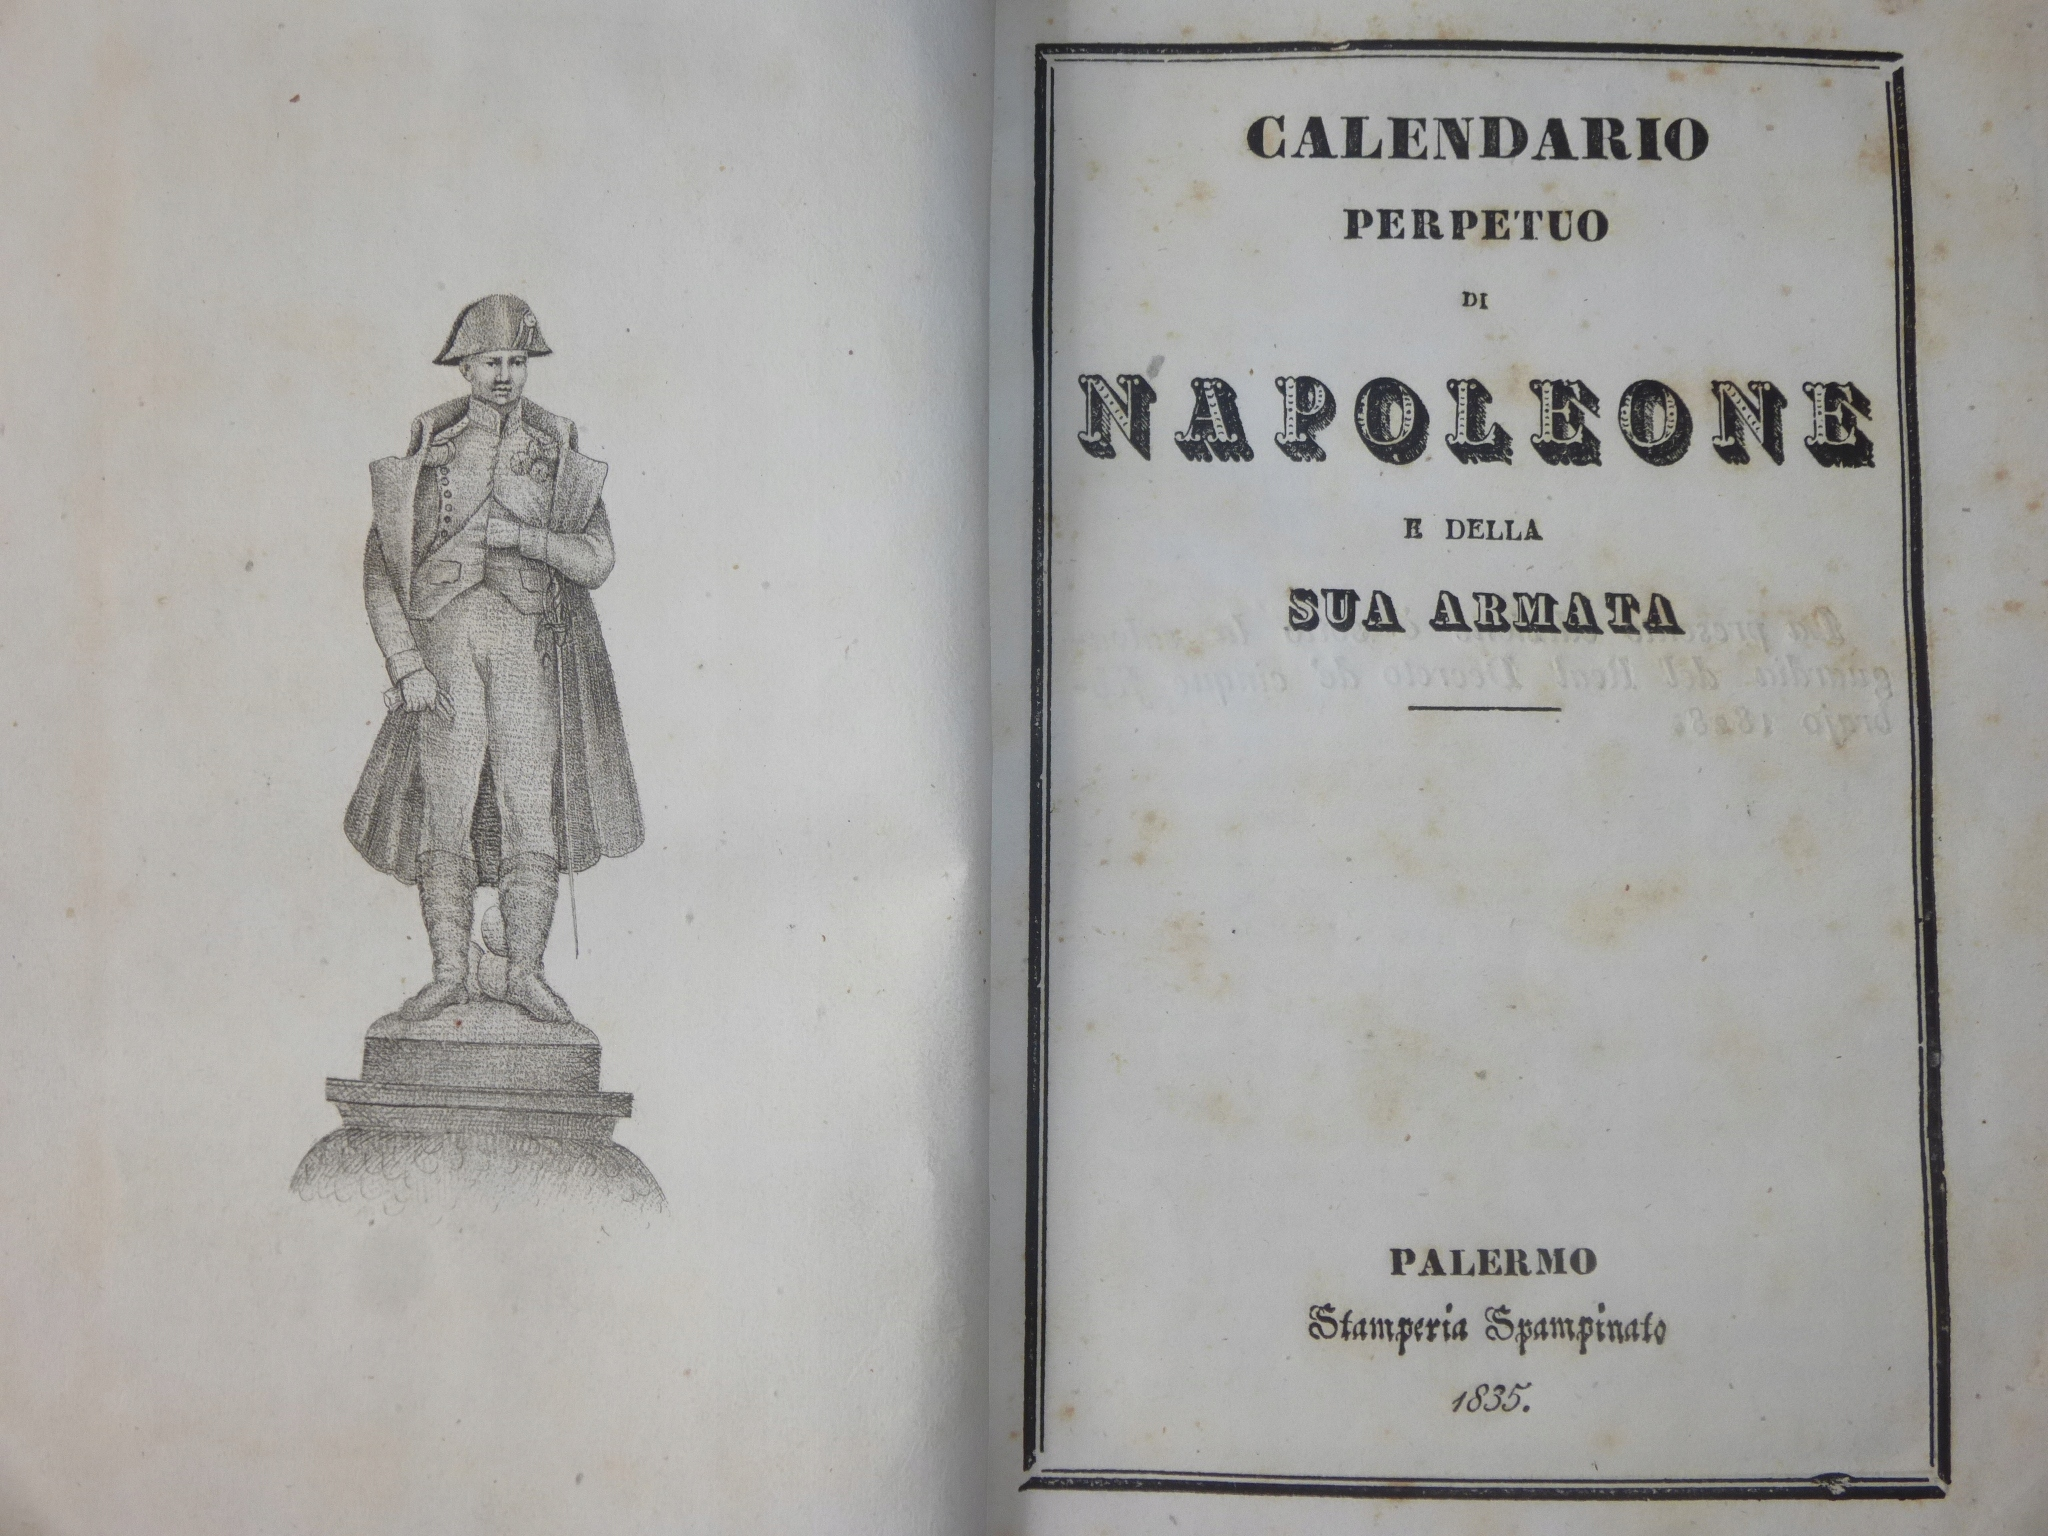 Item !RRR! THE PERPETUAL CALENDAR OF NAPOLEON AND HIS ARMY!